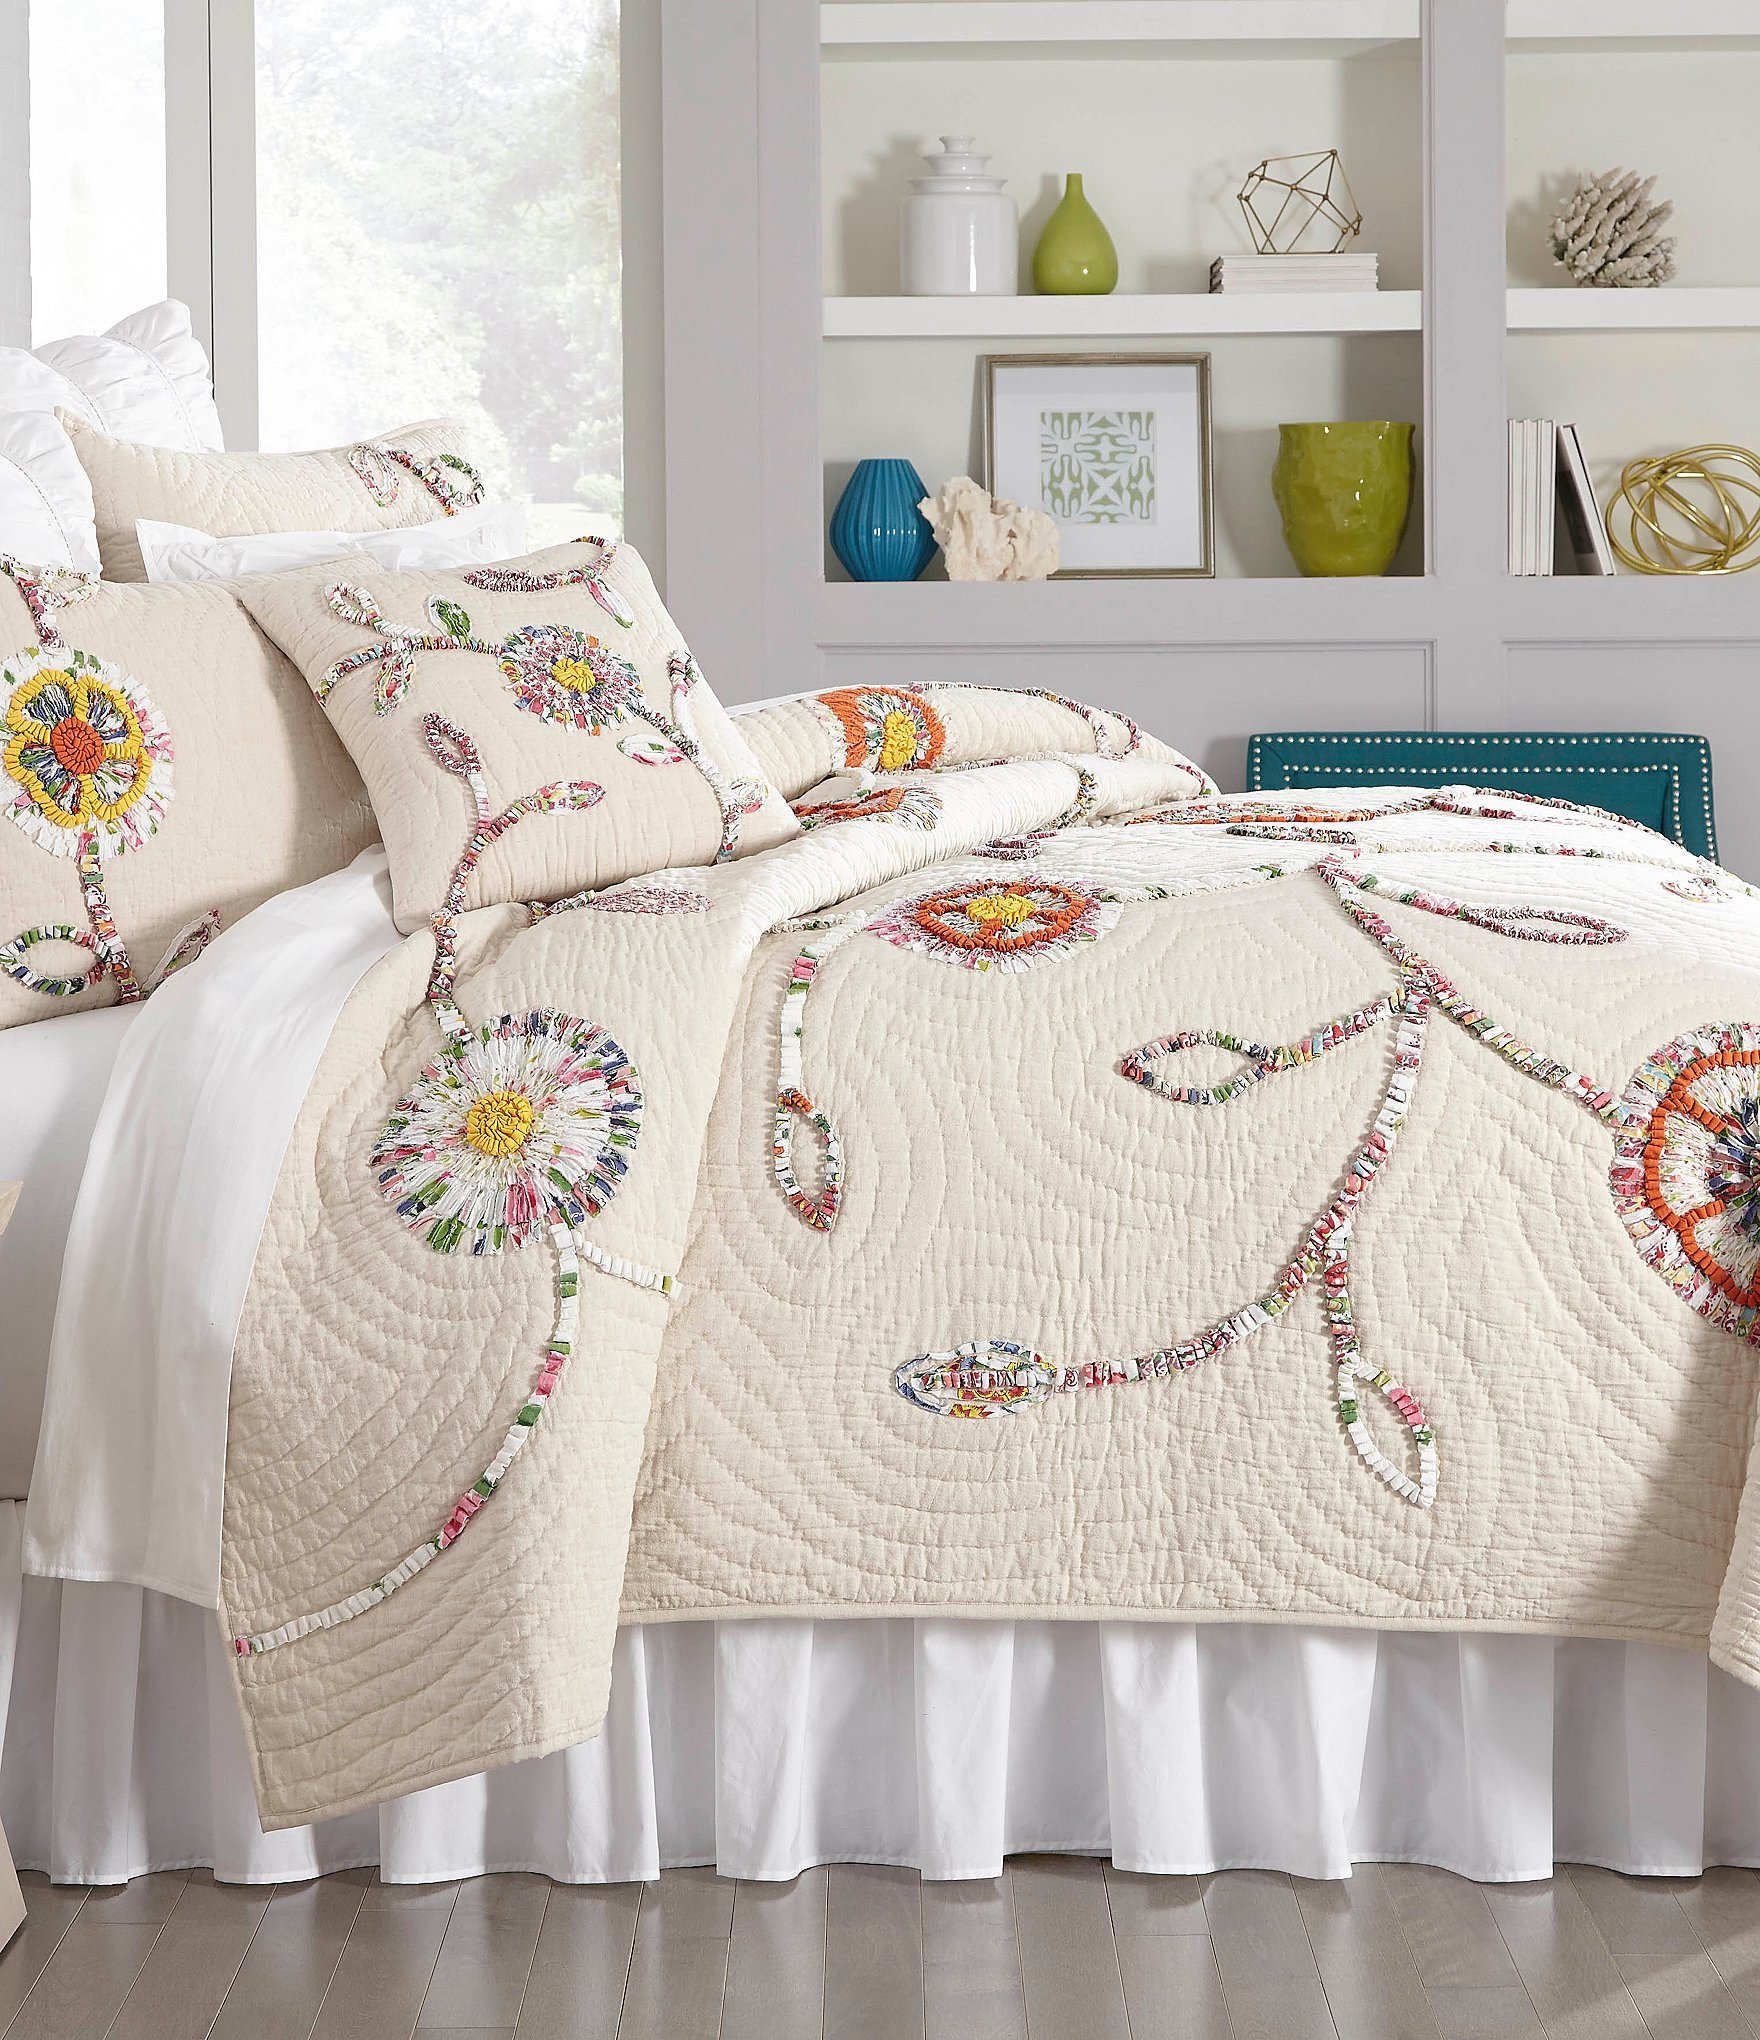 Bed sheet set with quilt - Bed Sheet Set With Quilt 9